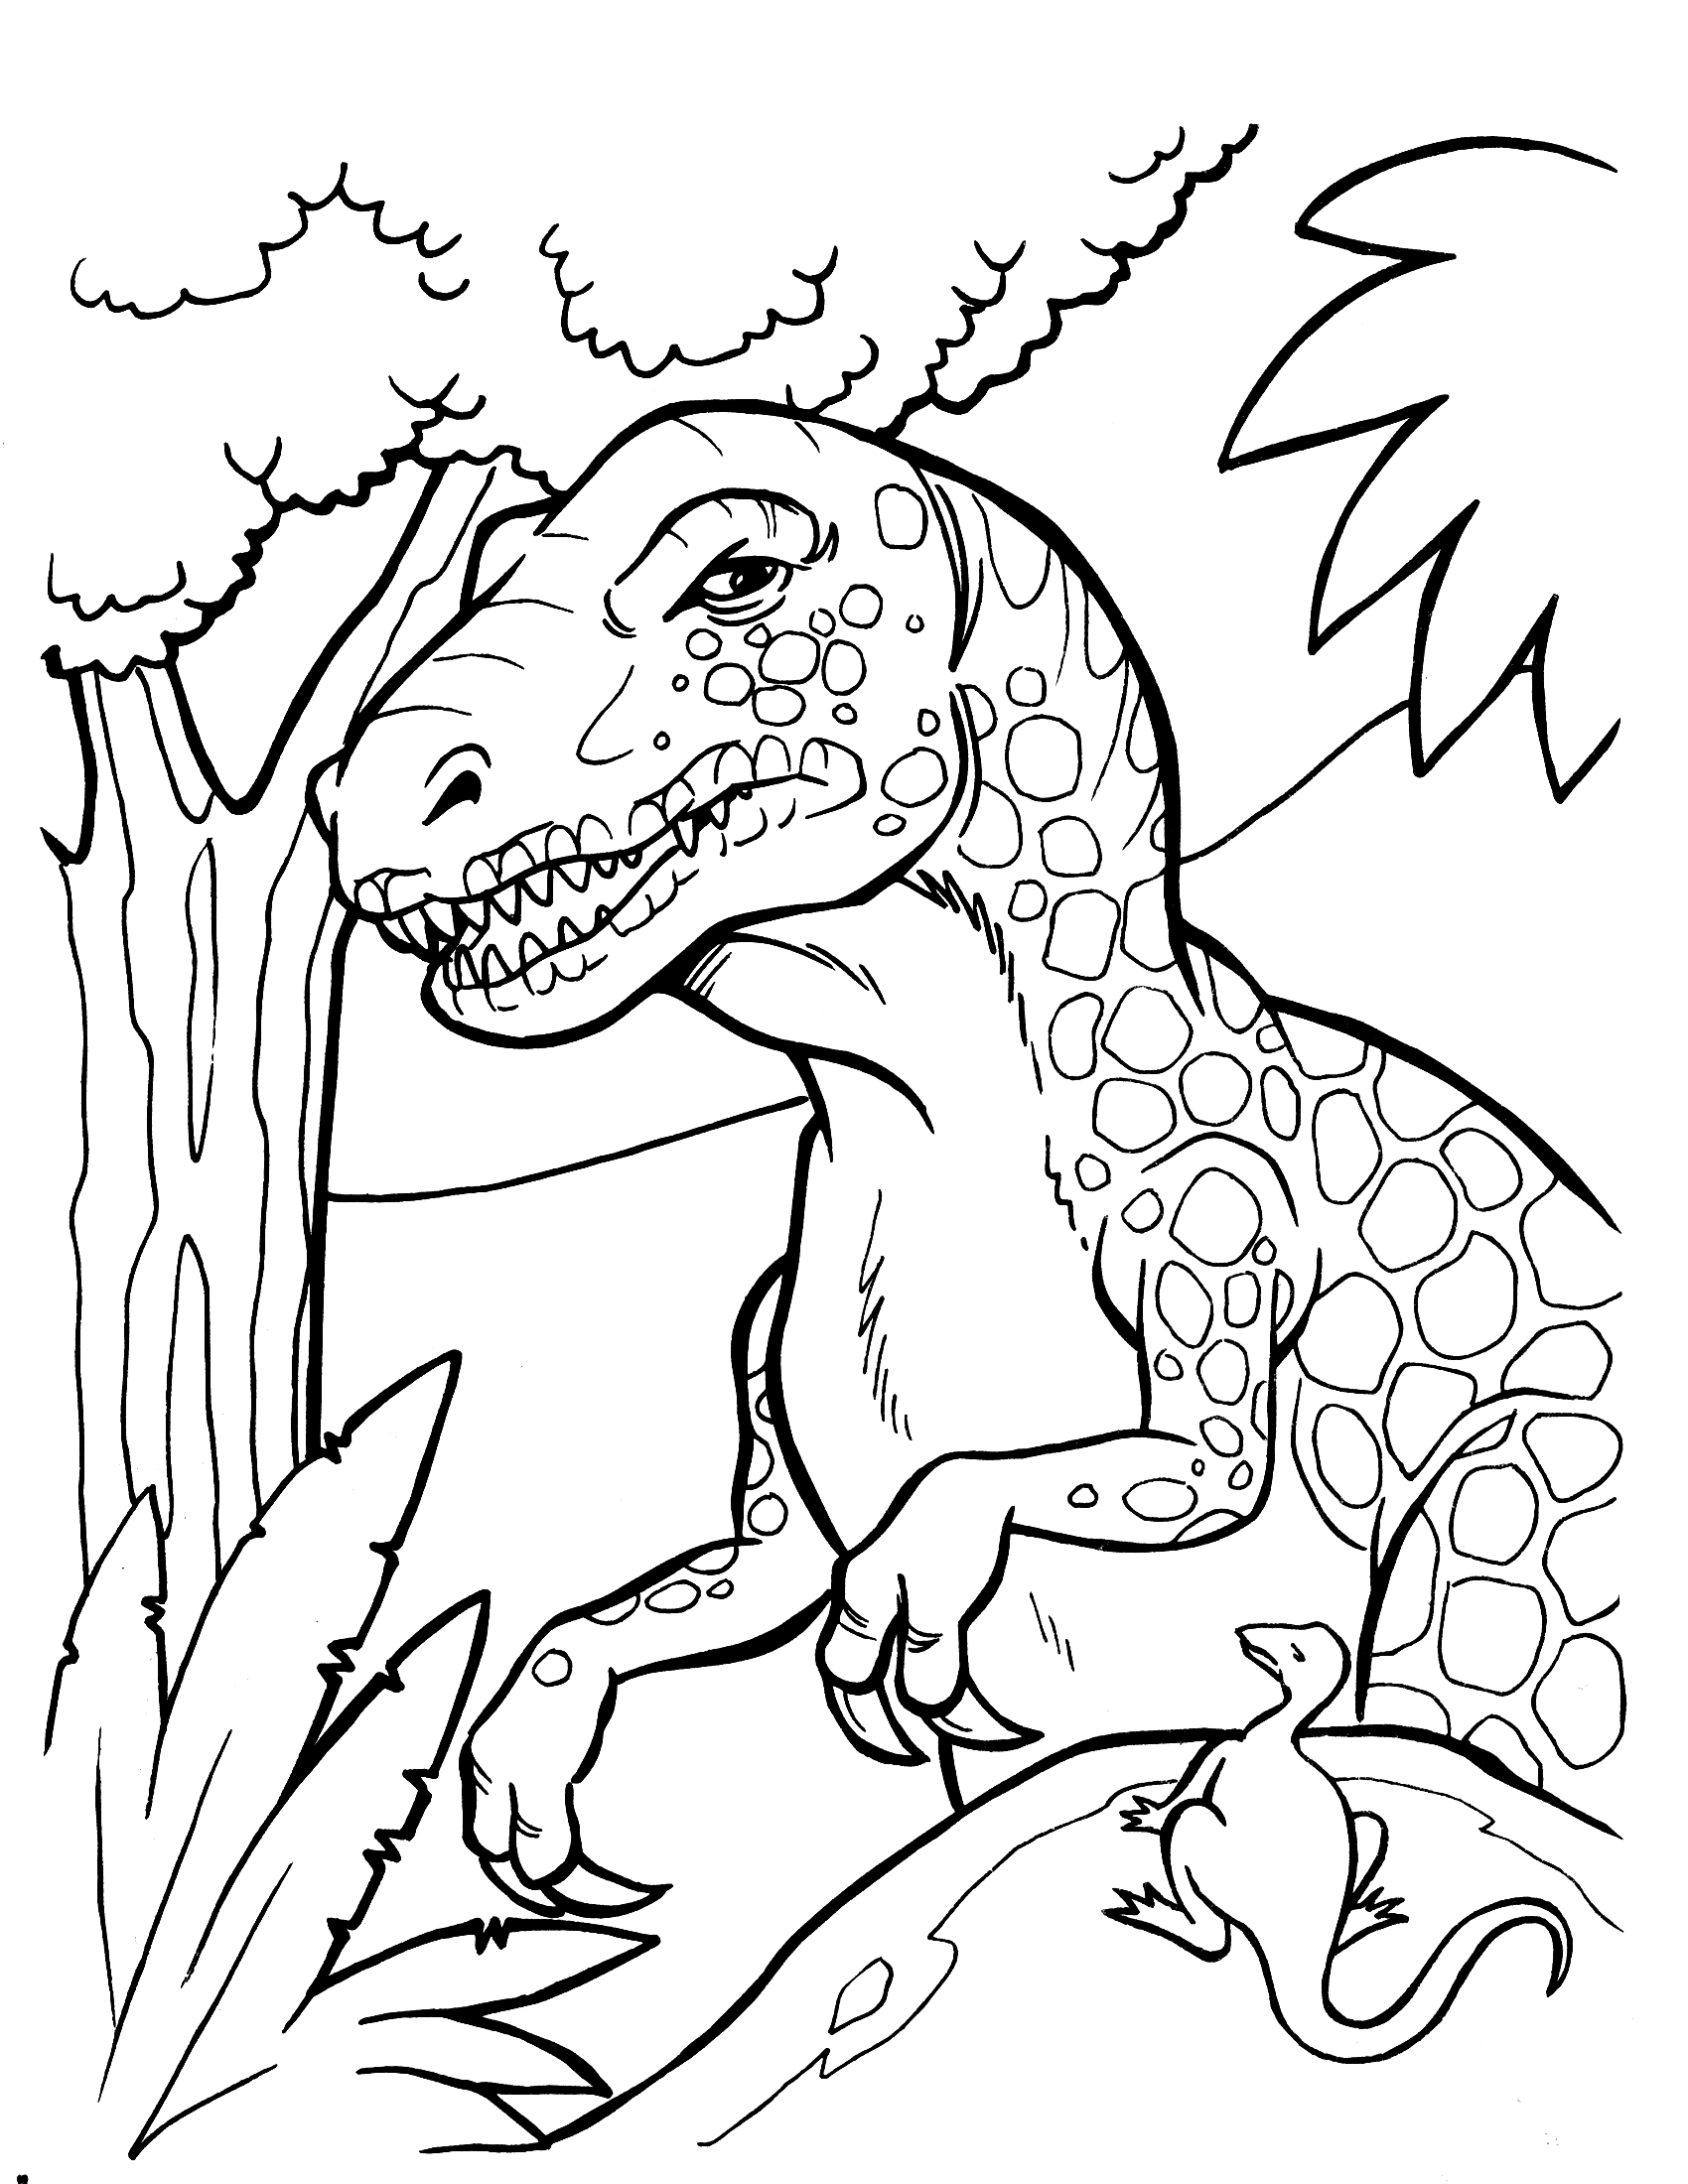 dino coloring pages print download dinosaur t rex coloring pages for kids coloring pages dino